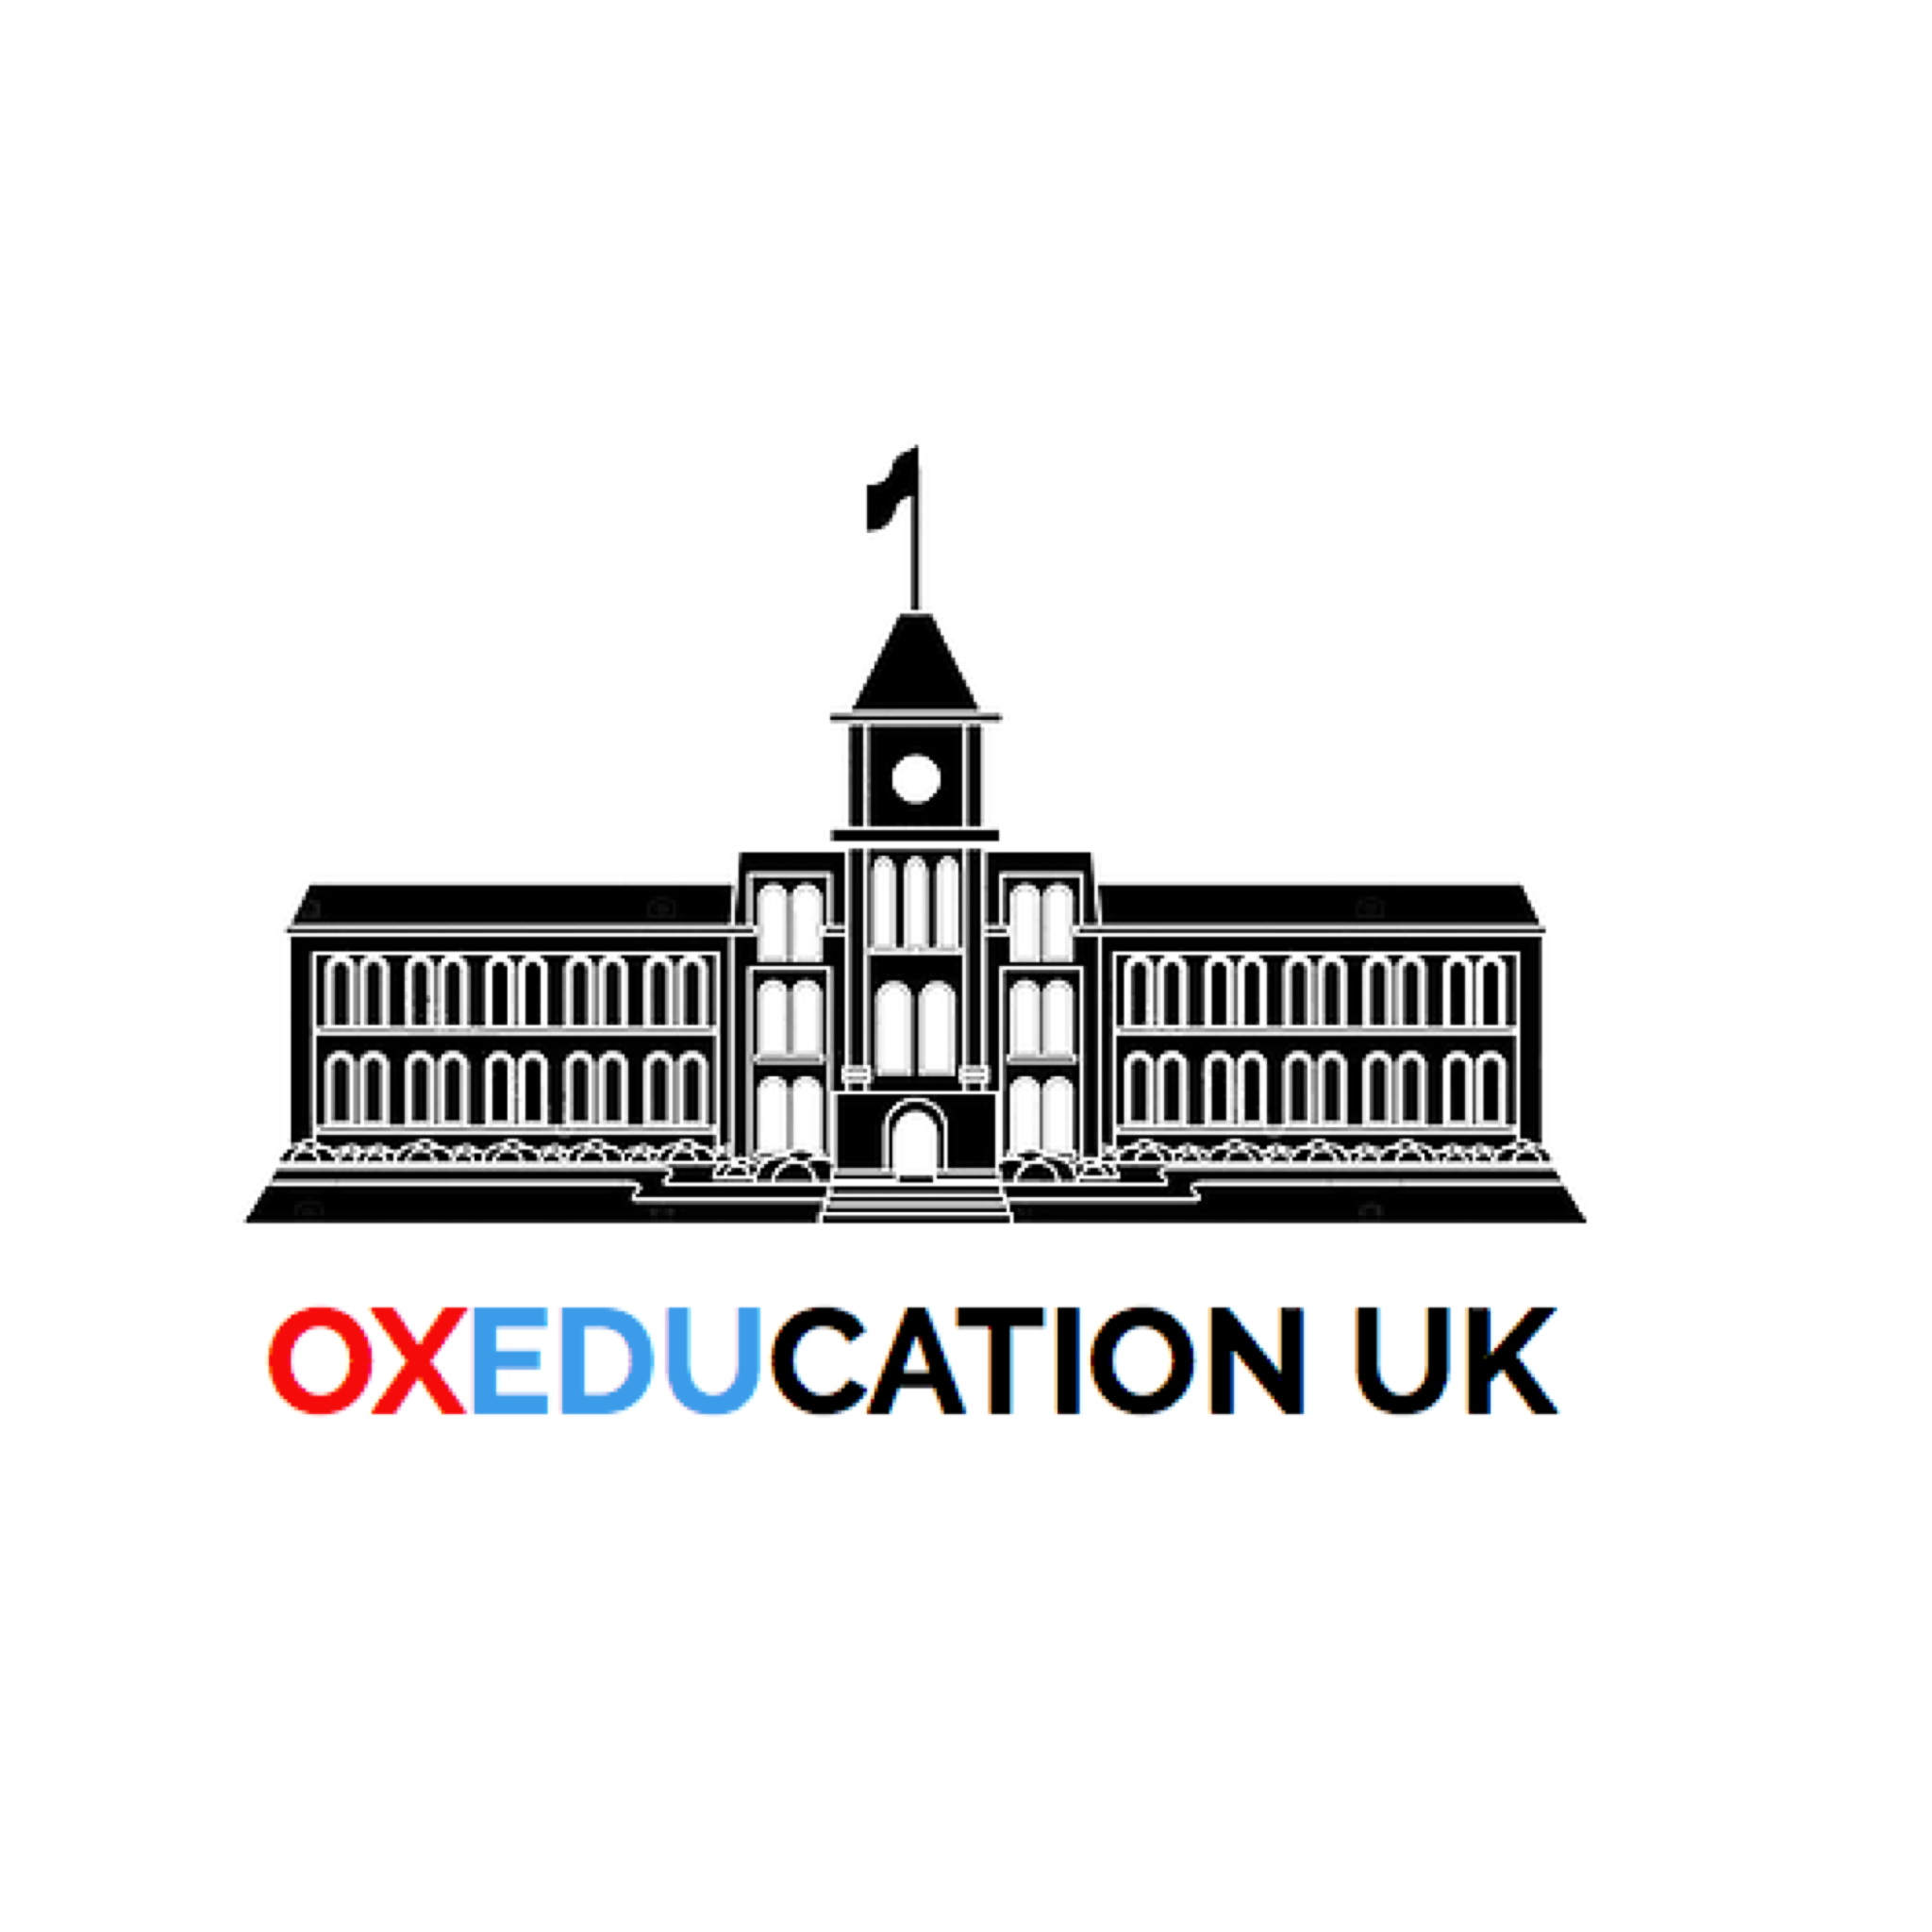 Oxeducation (白边).png